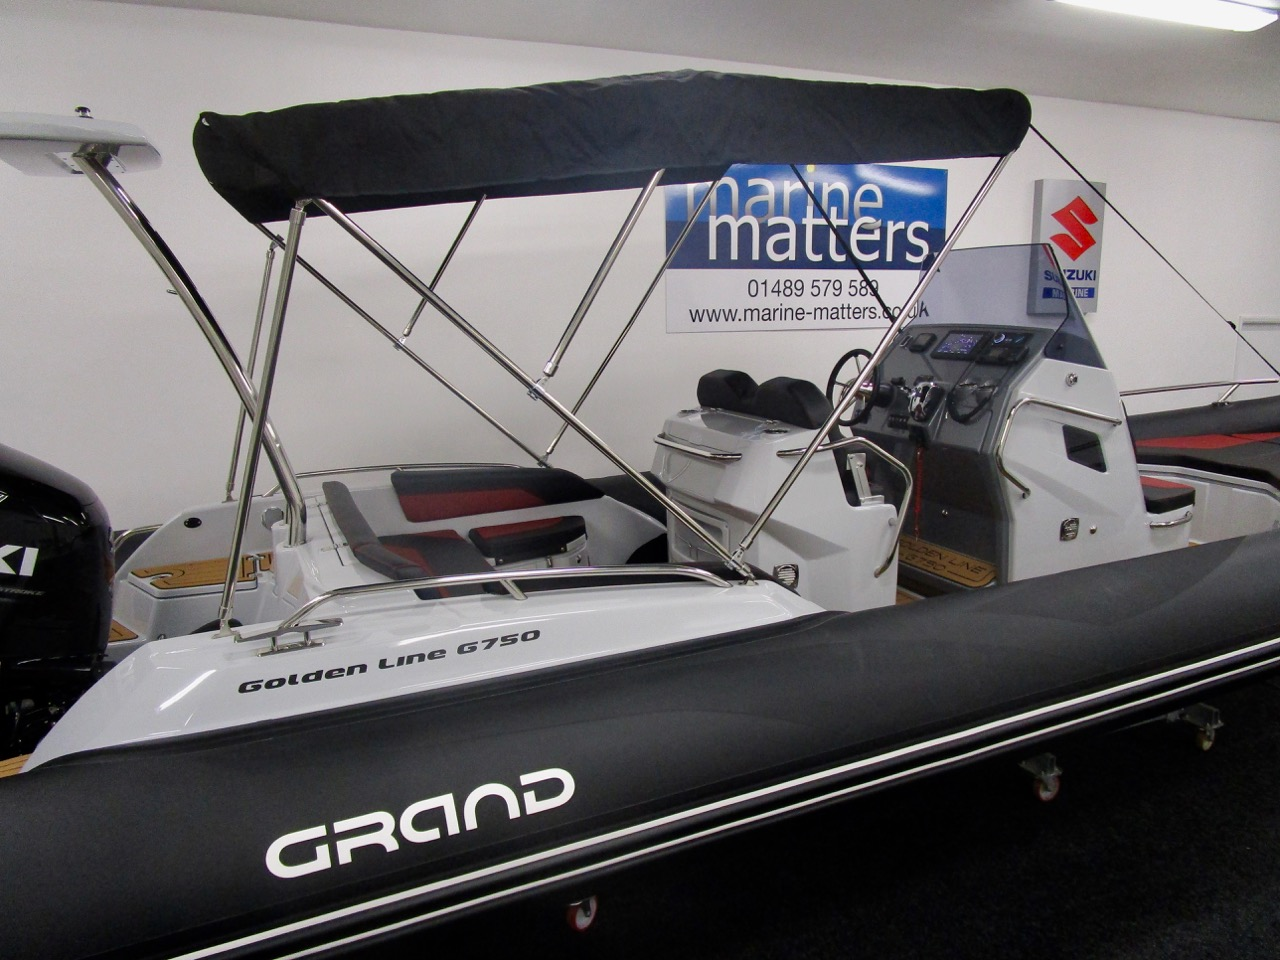 GRAND G750 RIB bimini deployed